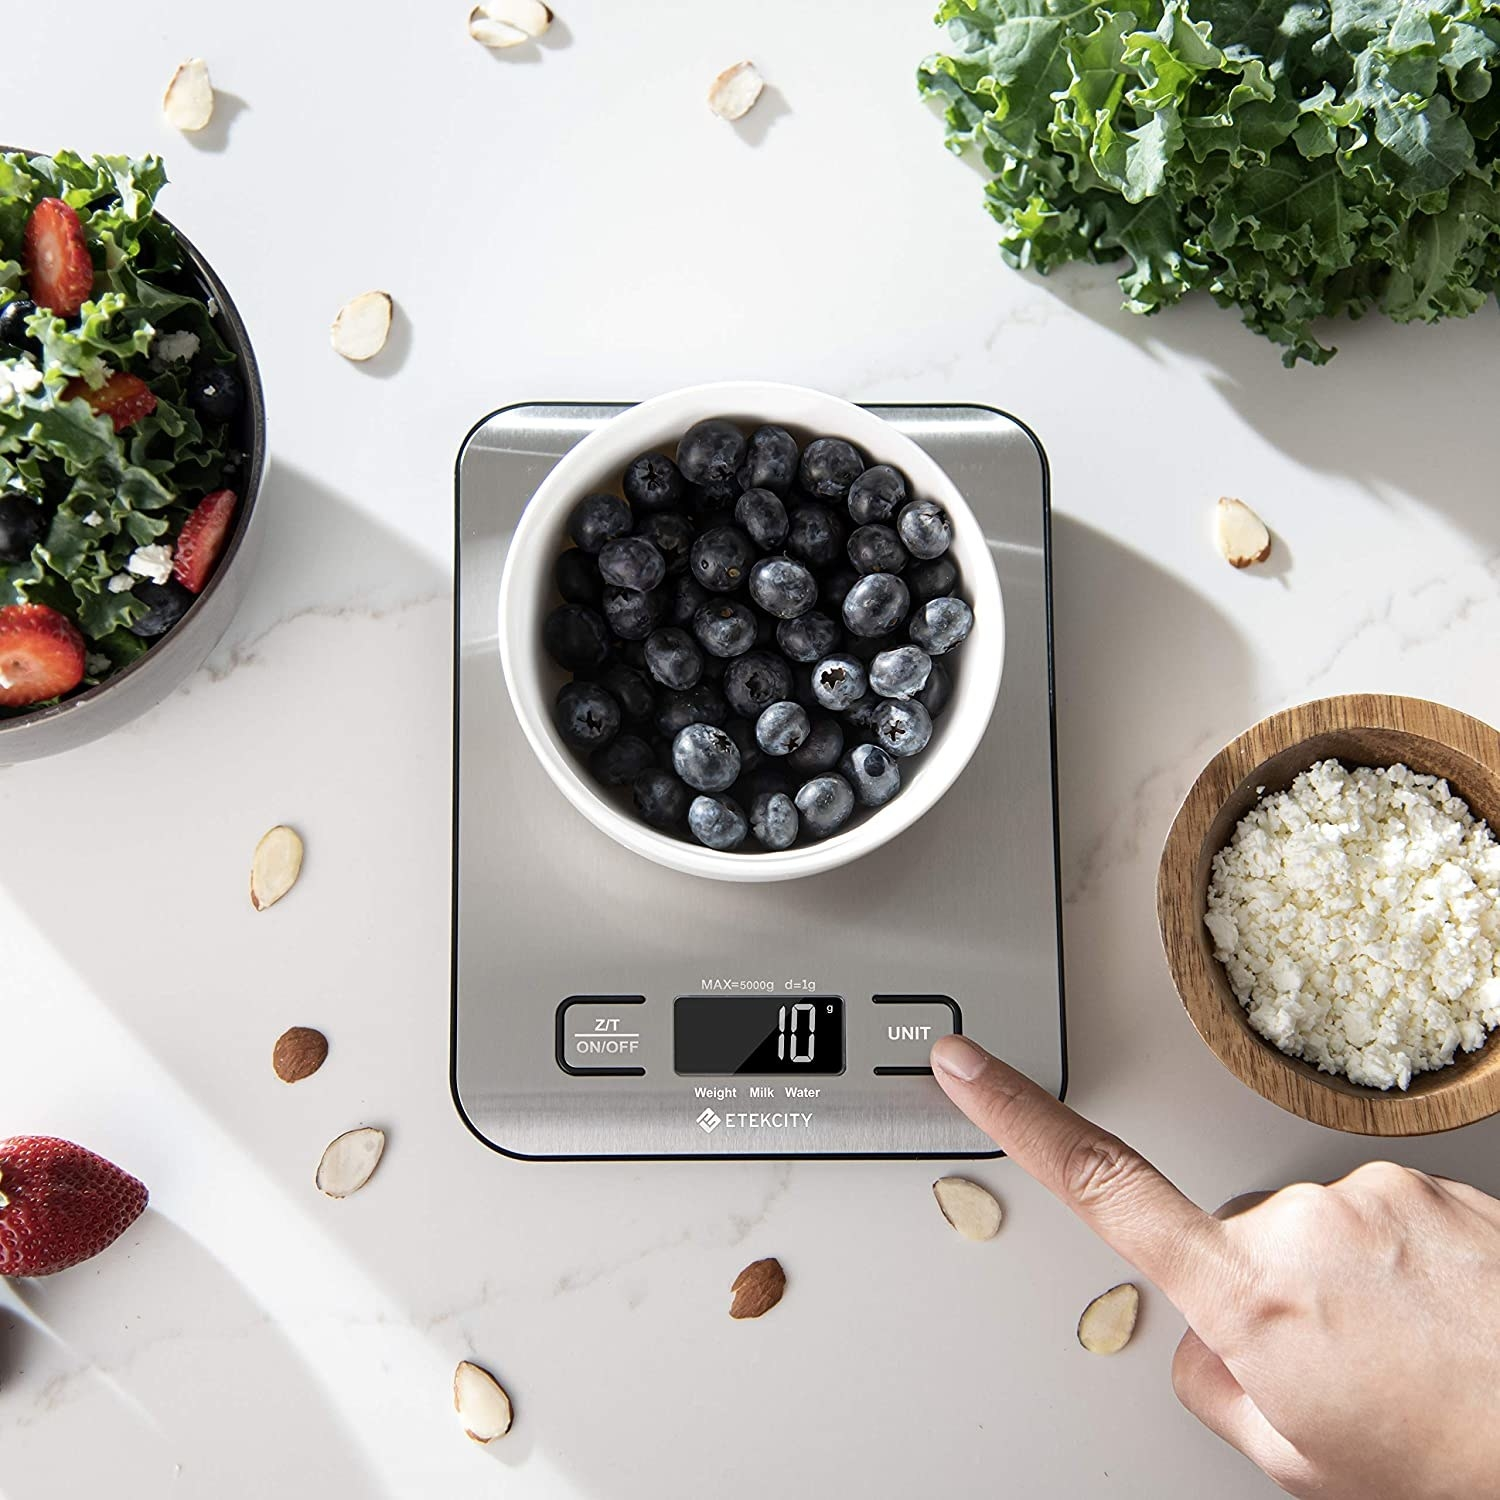 Model pressing digital display on small stainless steel scale